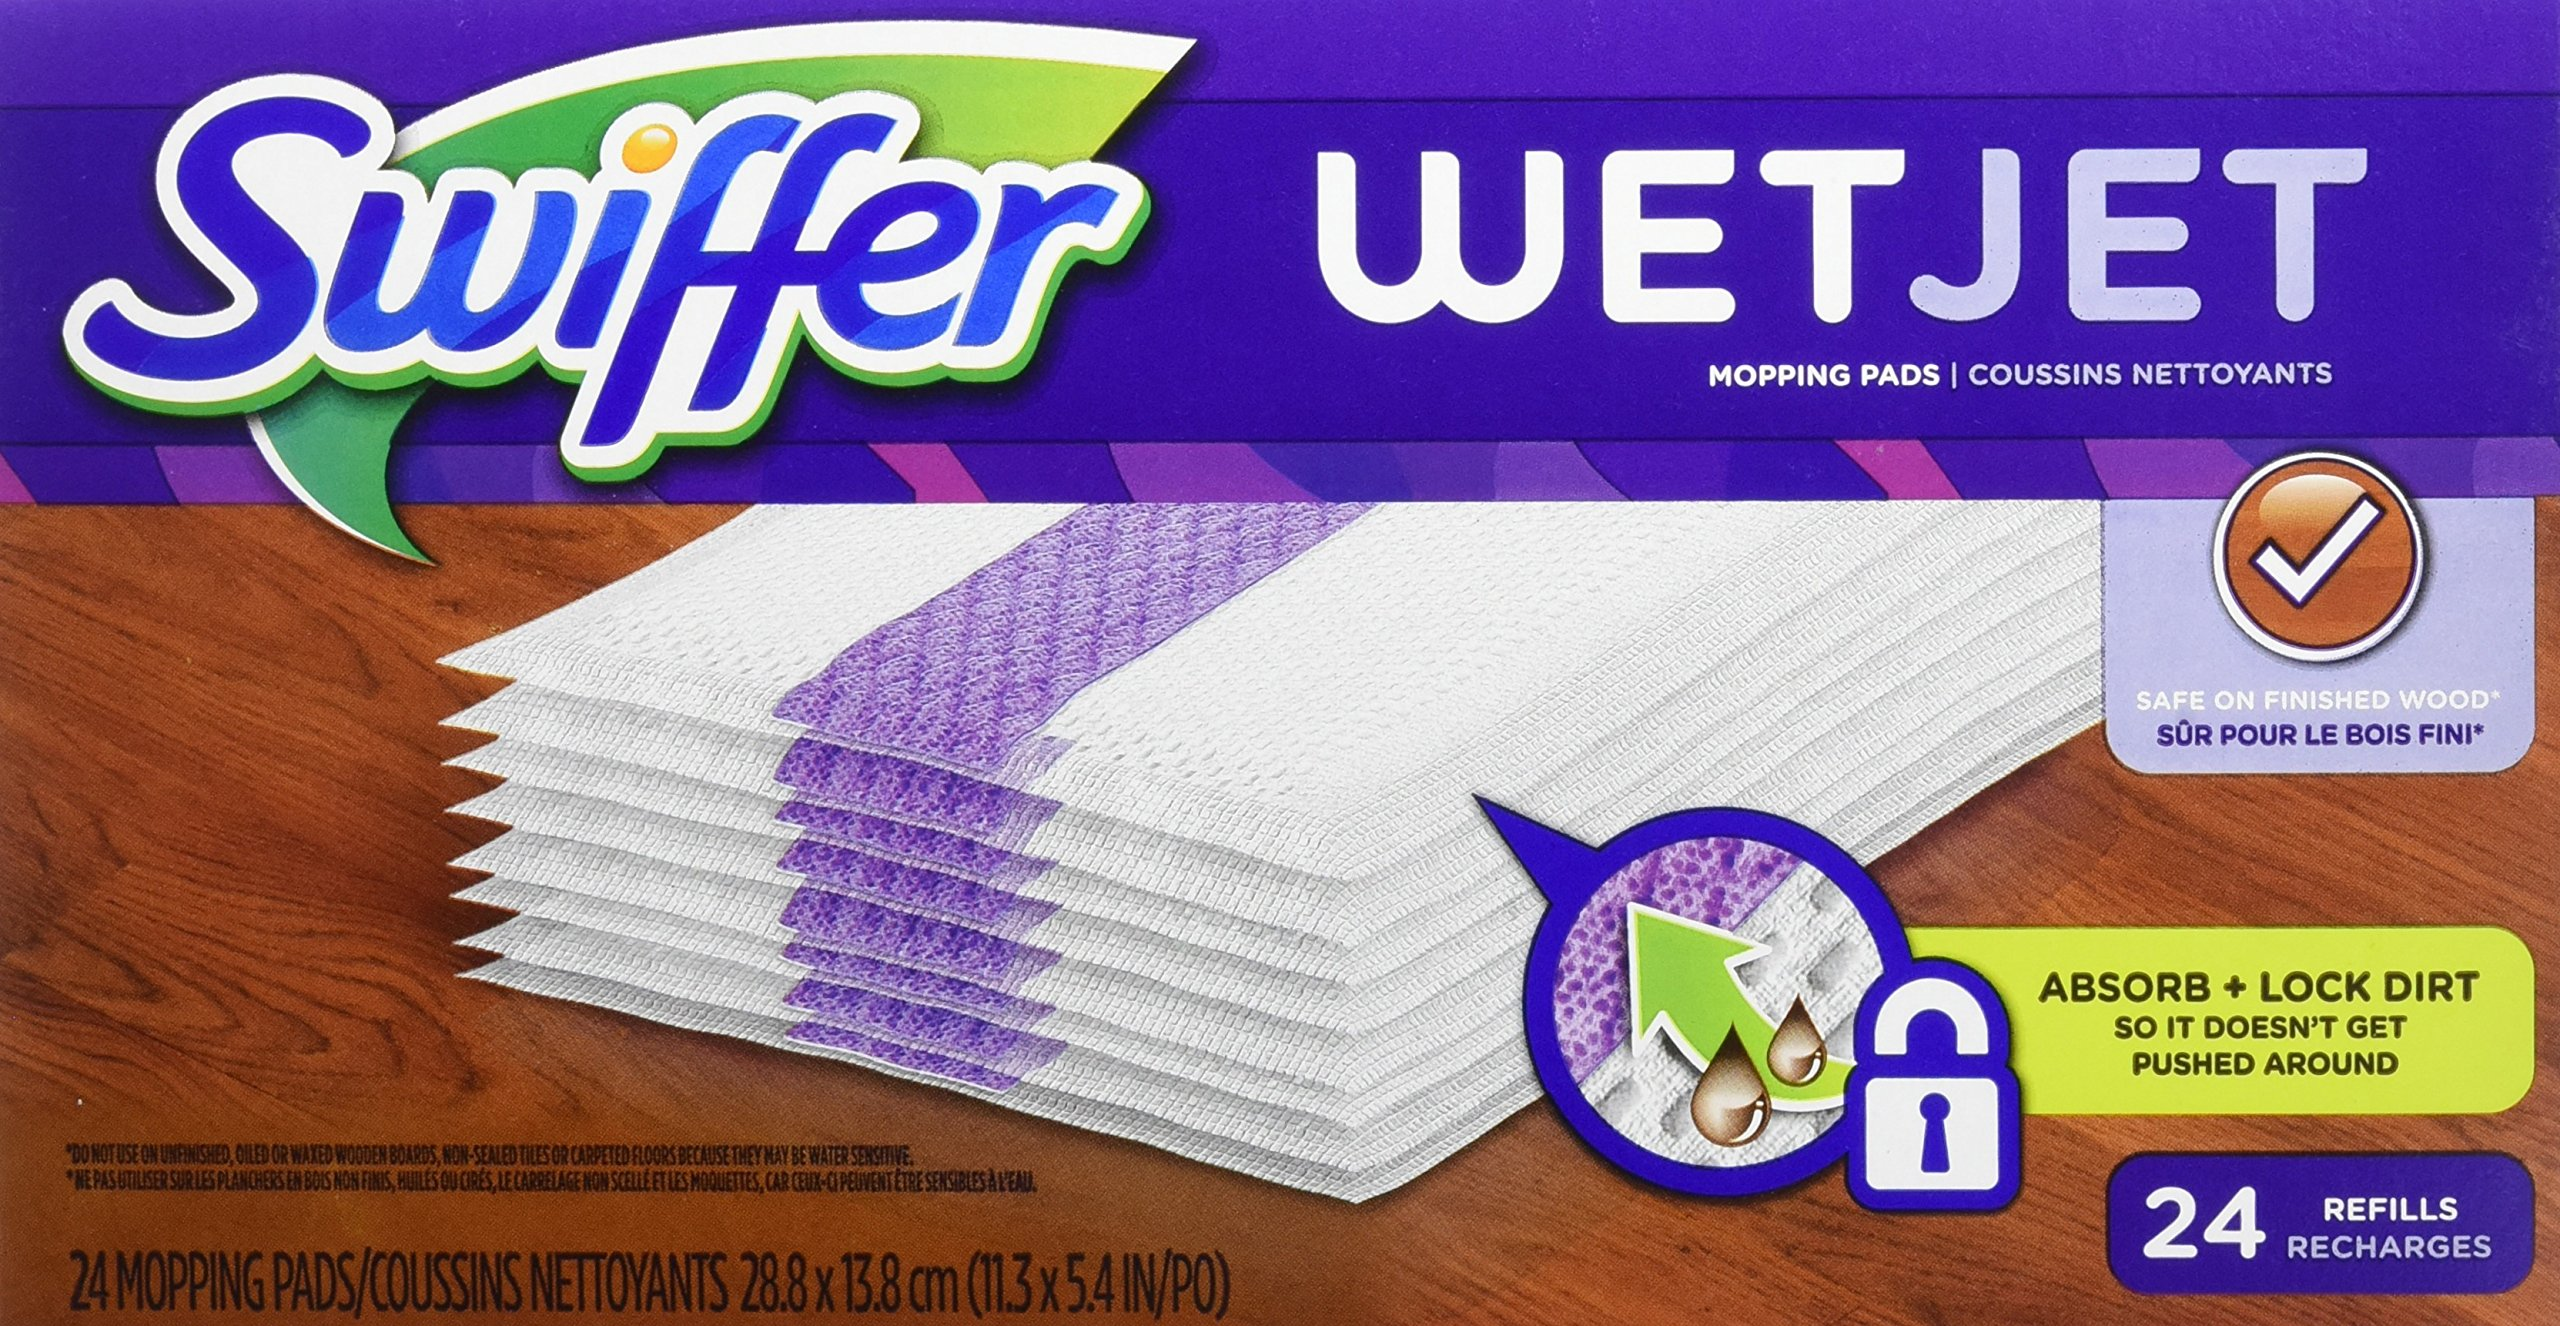 Swiffer WetJet Spray Mop Floor Cleaner Pad Refills, 24-Count (Pack of 2) (Packaging May Vary) by Swiffer